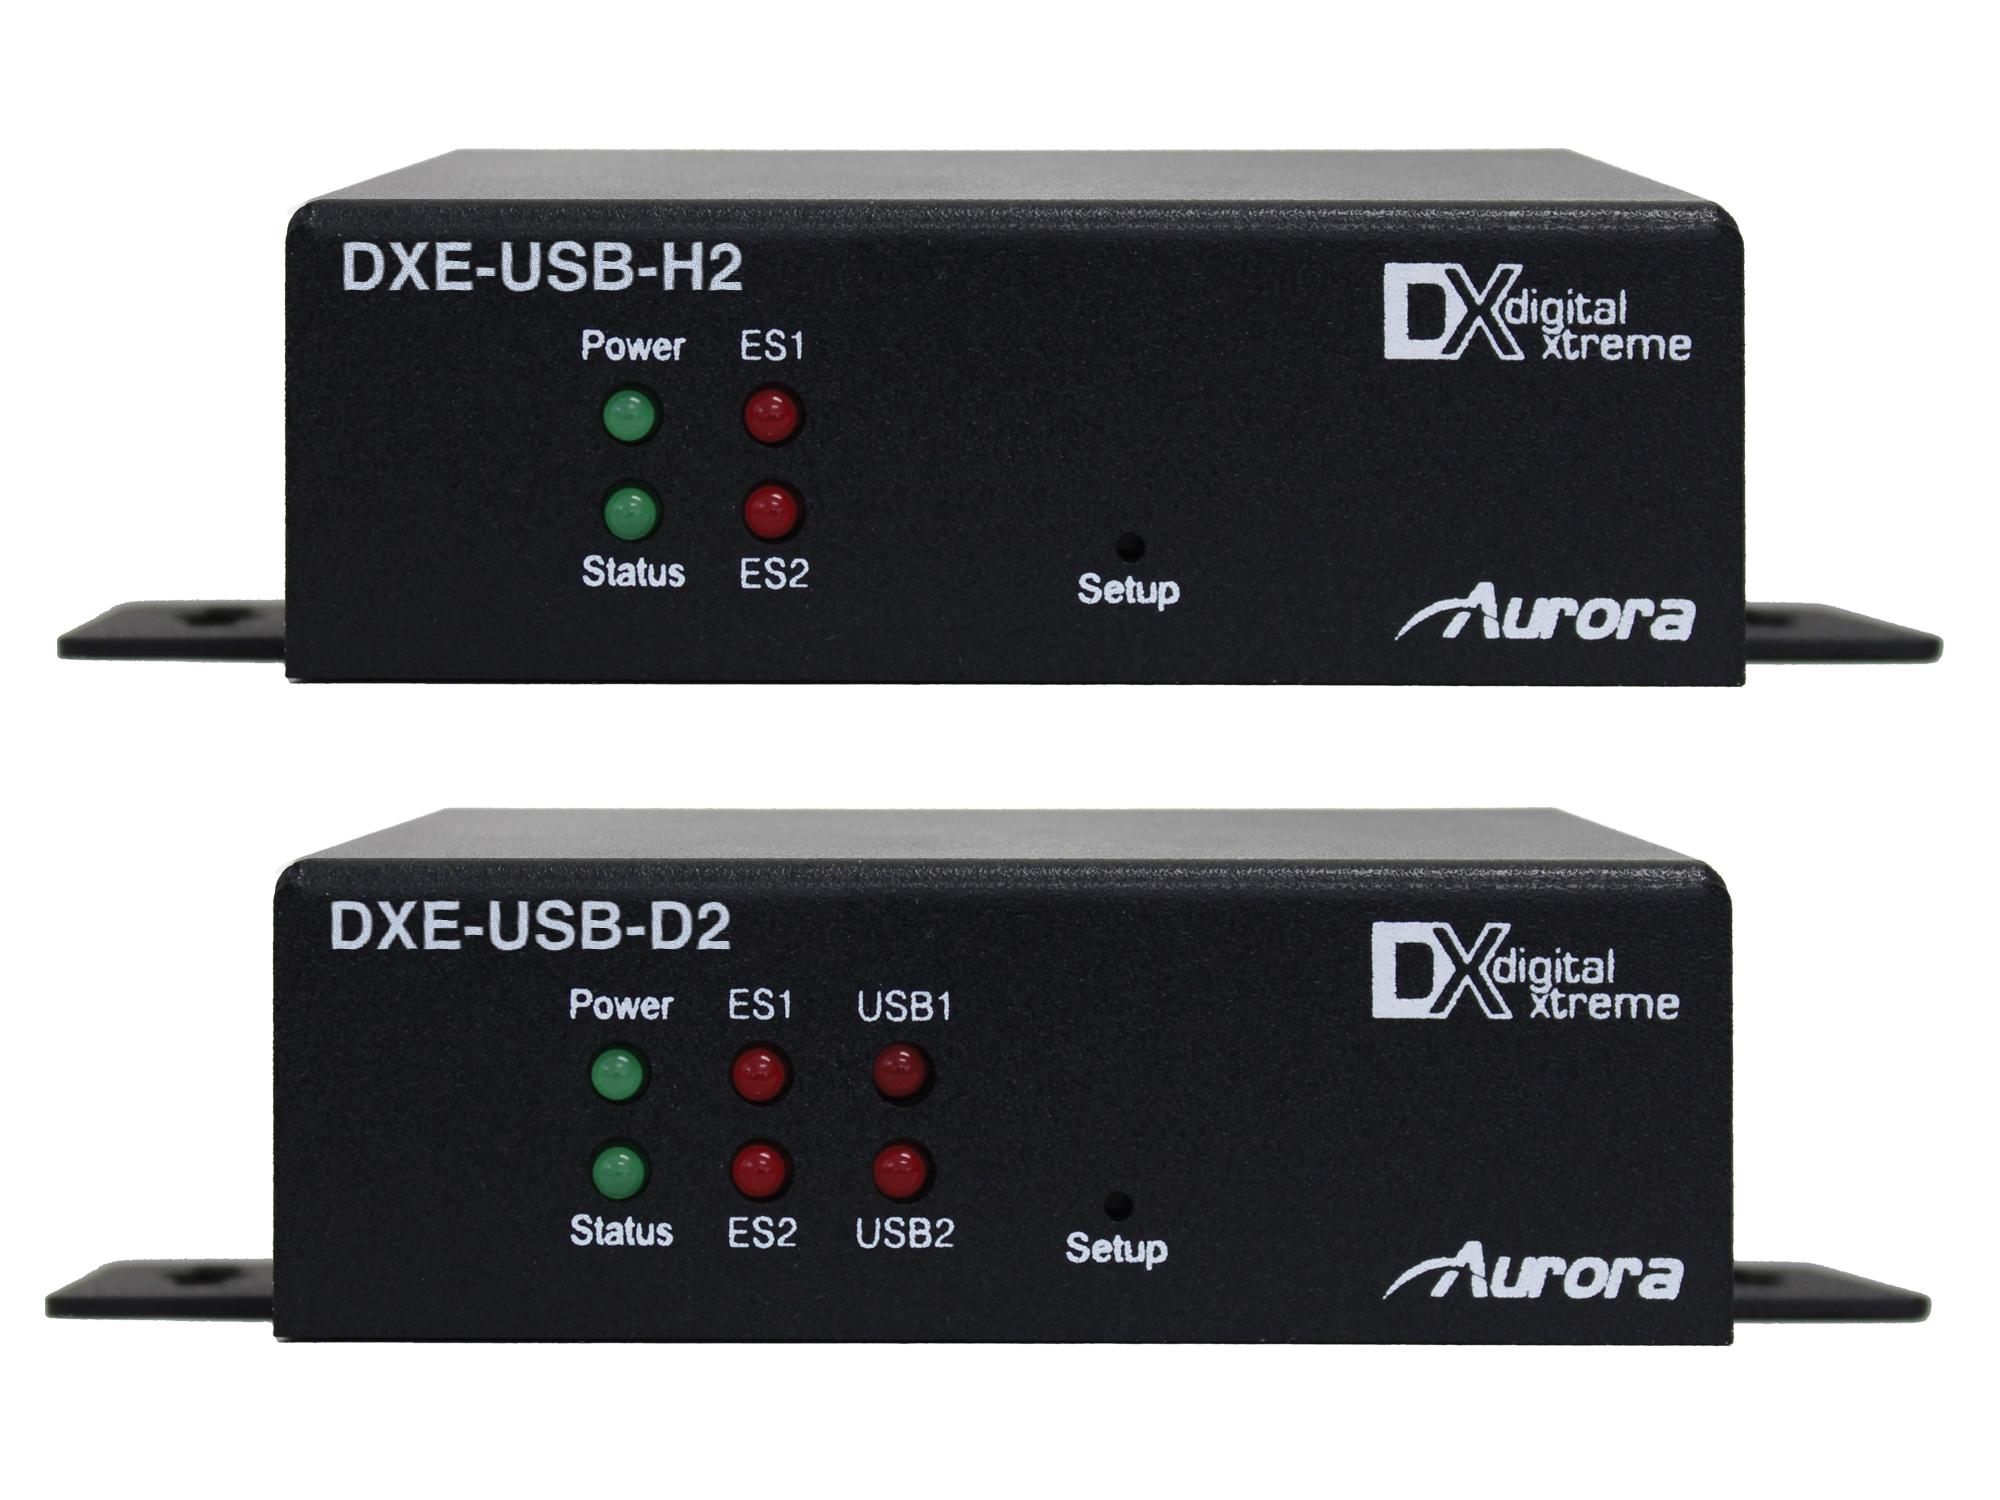 Aurora Multimedia DXE-USB-S2 480Mb USB 2.0/HDBaseT Extender (Transmitter/Receiver) Kit over CAT6 STP up to 220ft